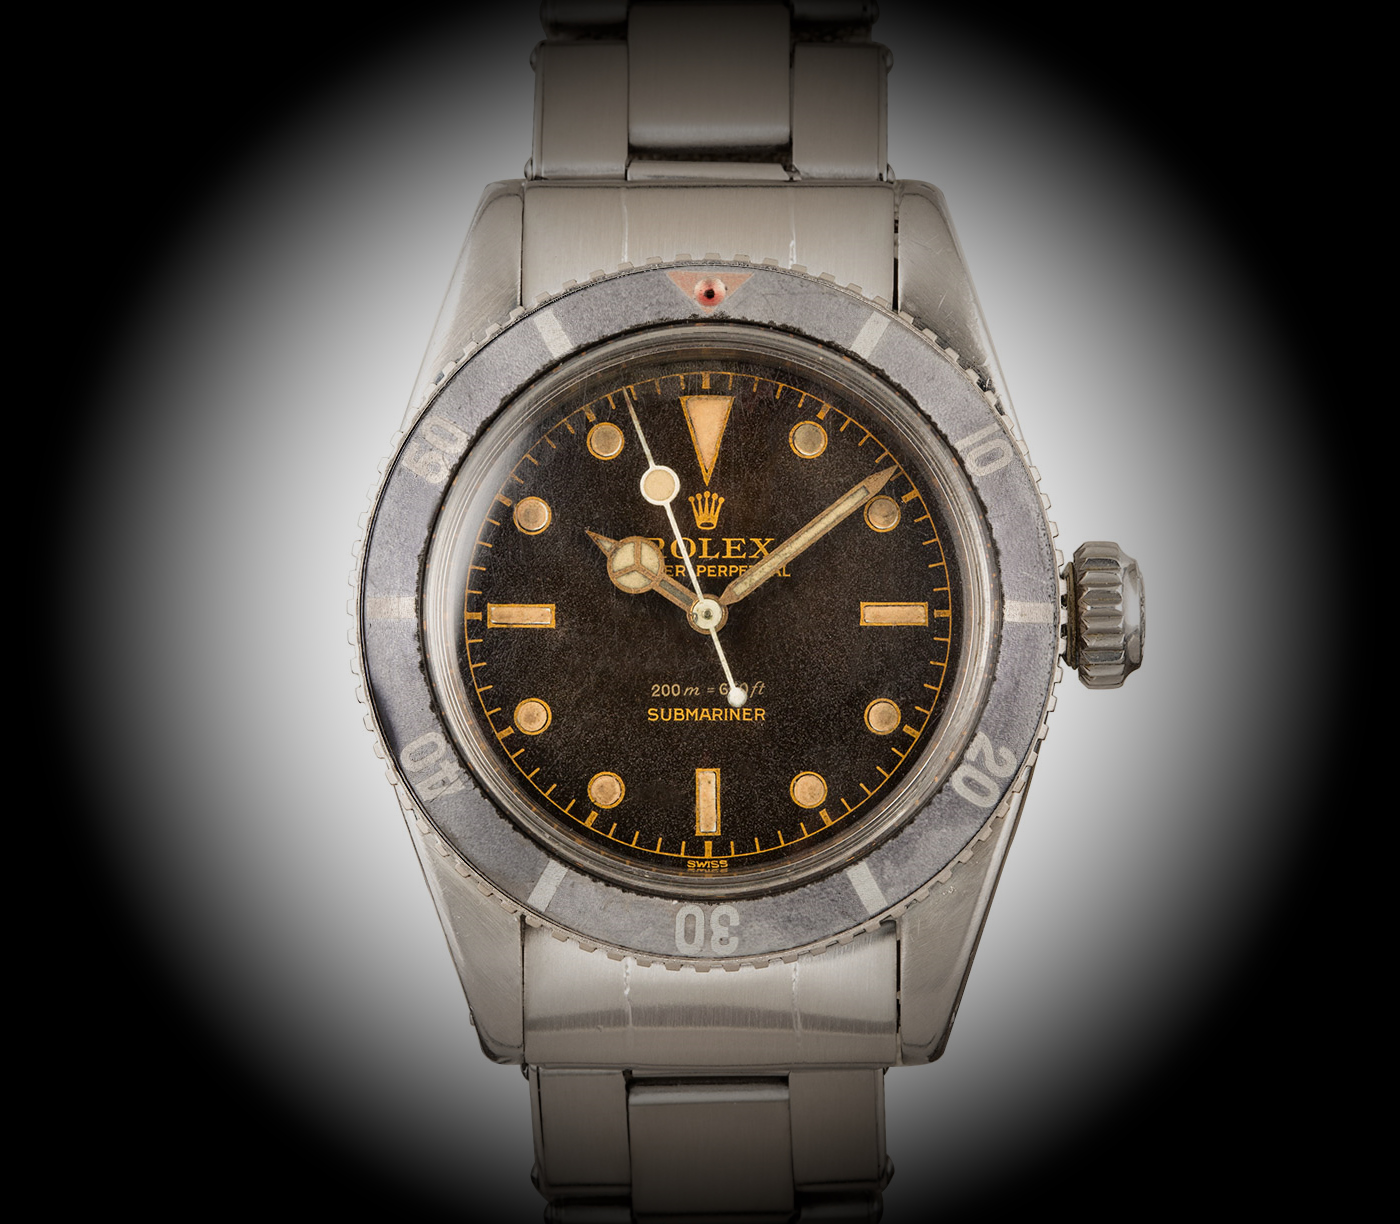 Iconic_watches_of_hollywood_Rolex_submariner_ref._6538_-_europa_star_watch_magazine_2020